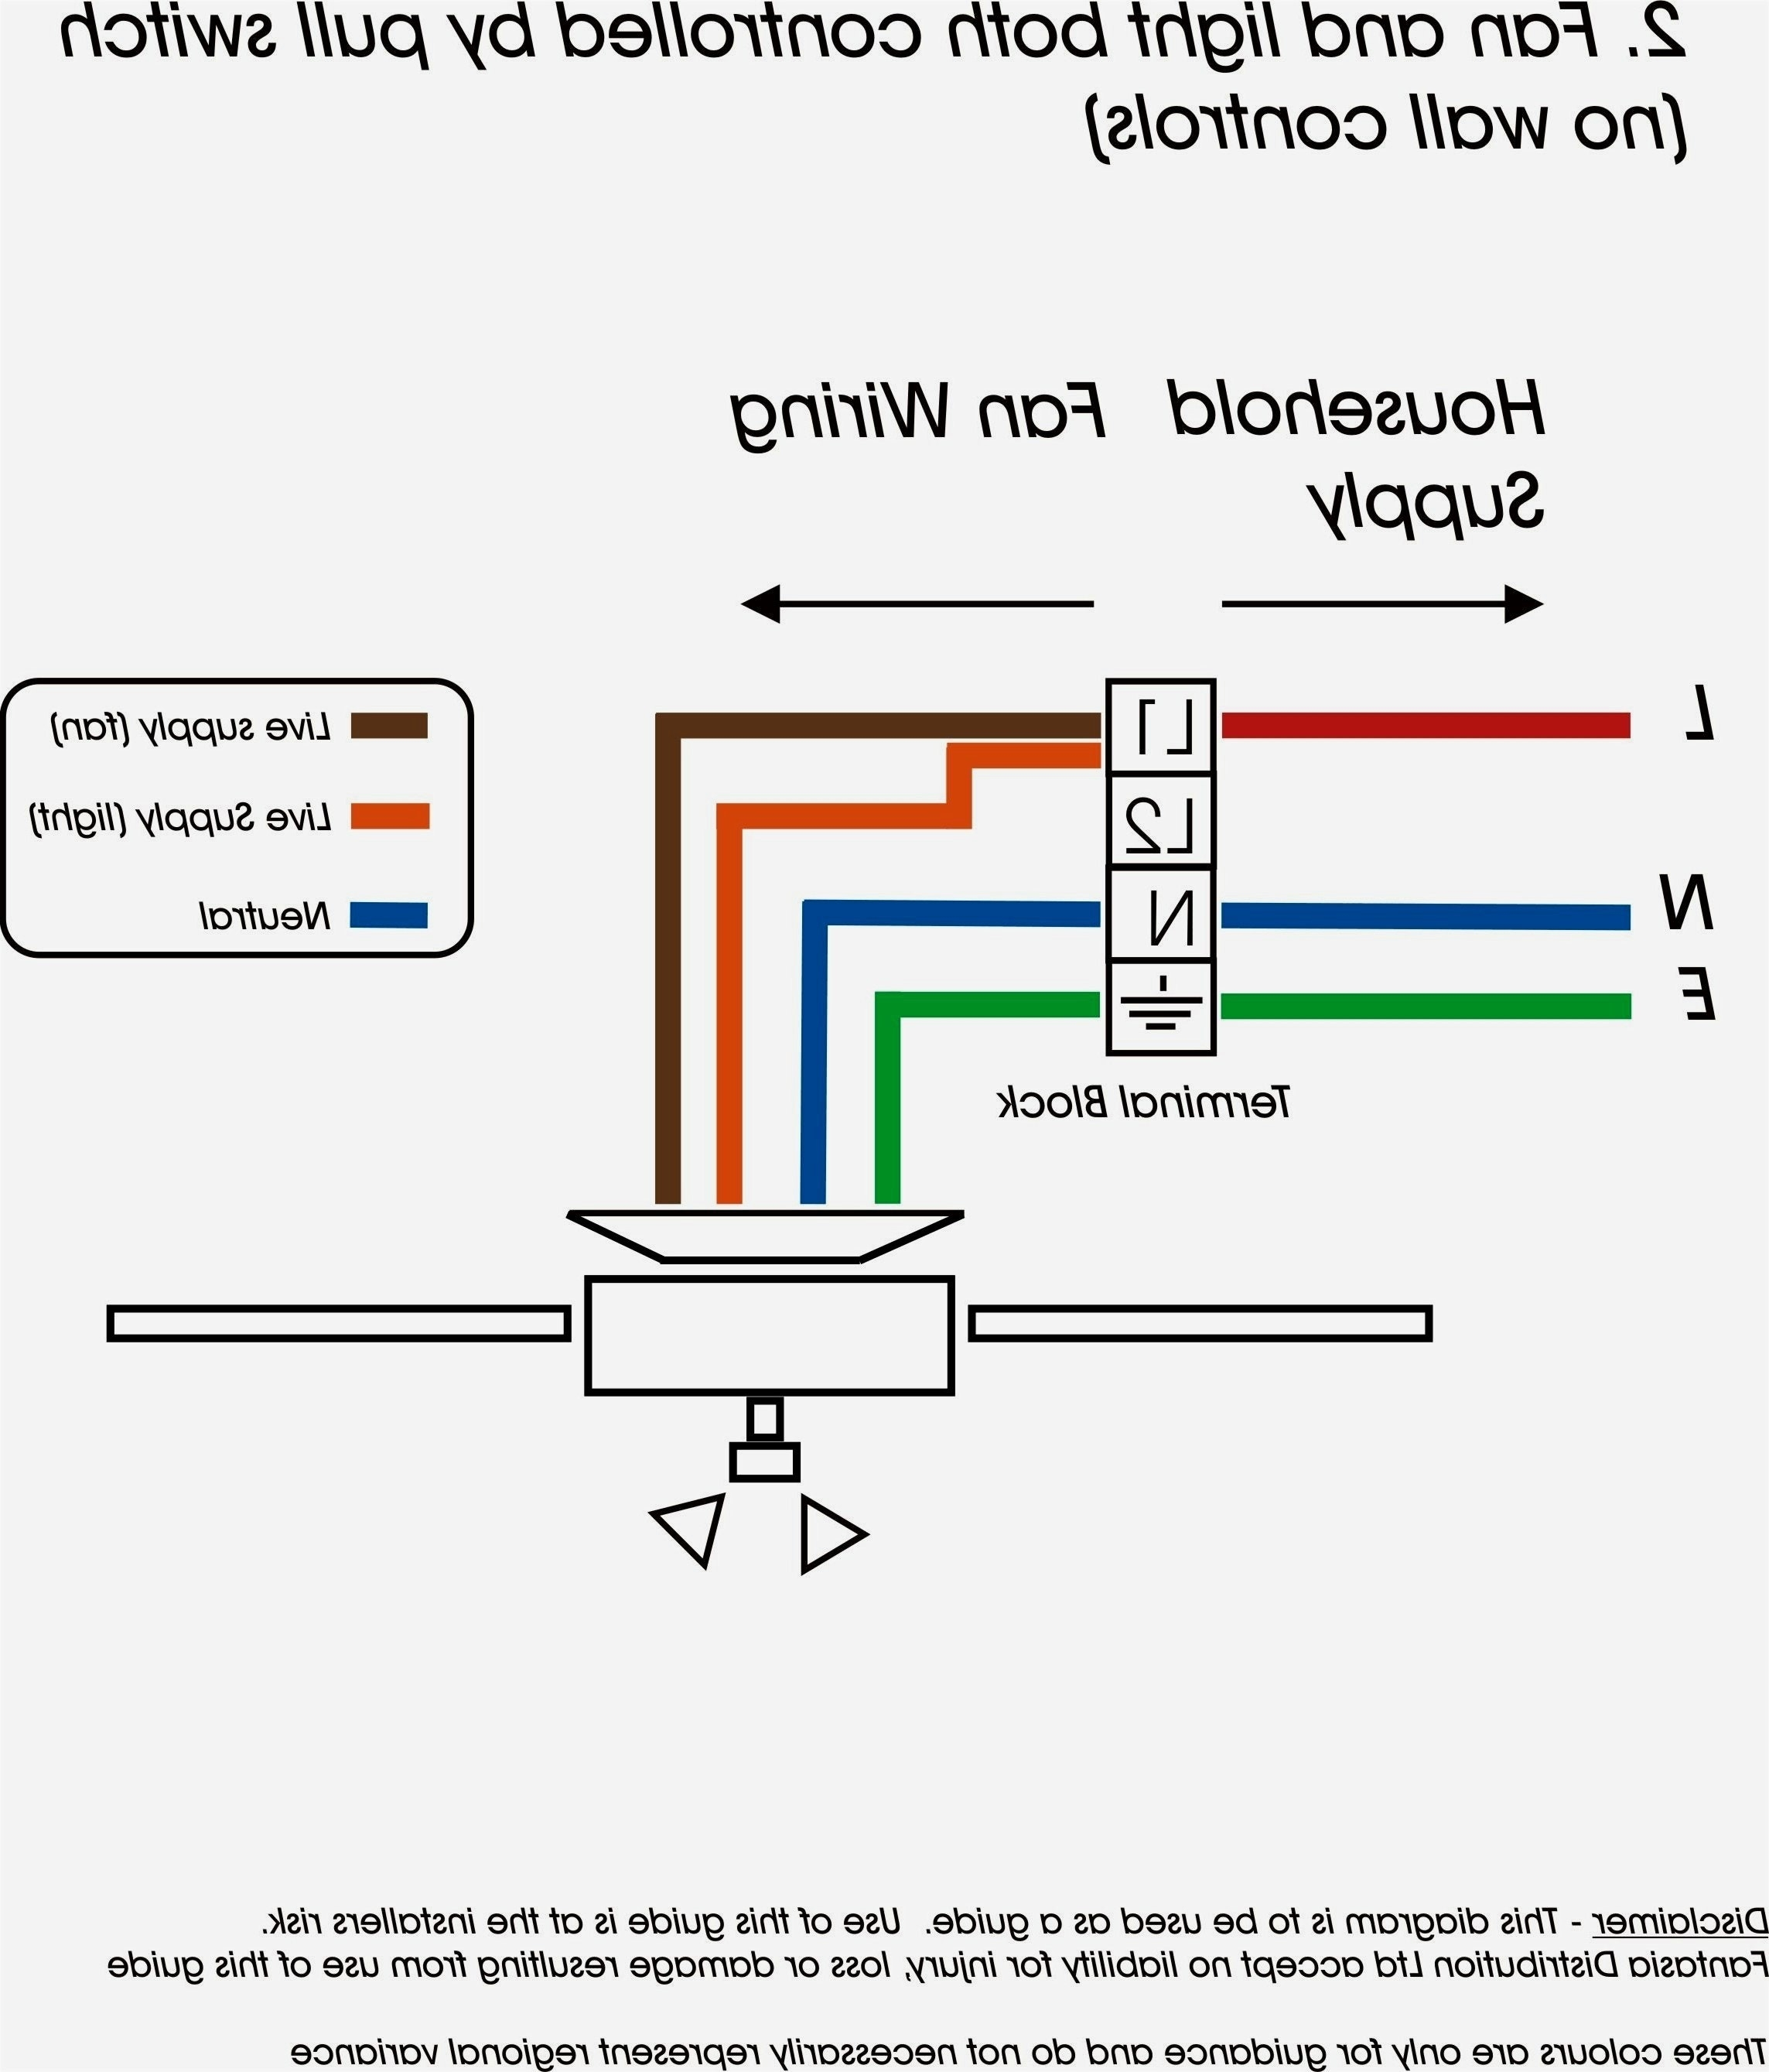 house light switch wiring diagram best wiring librarycentury dl1056 wiring diagram century dl1056 wiring diagram download house light switch wiring diagram collection